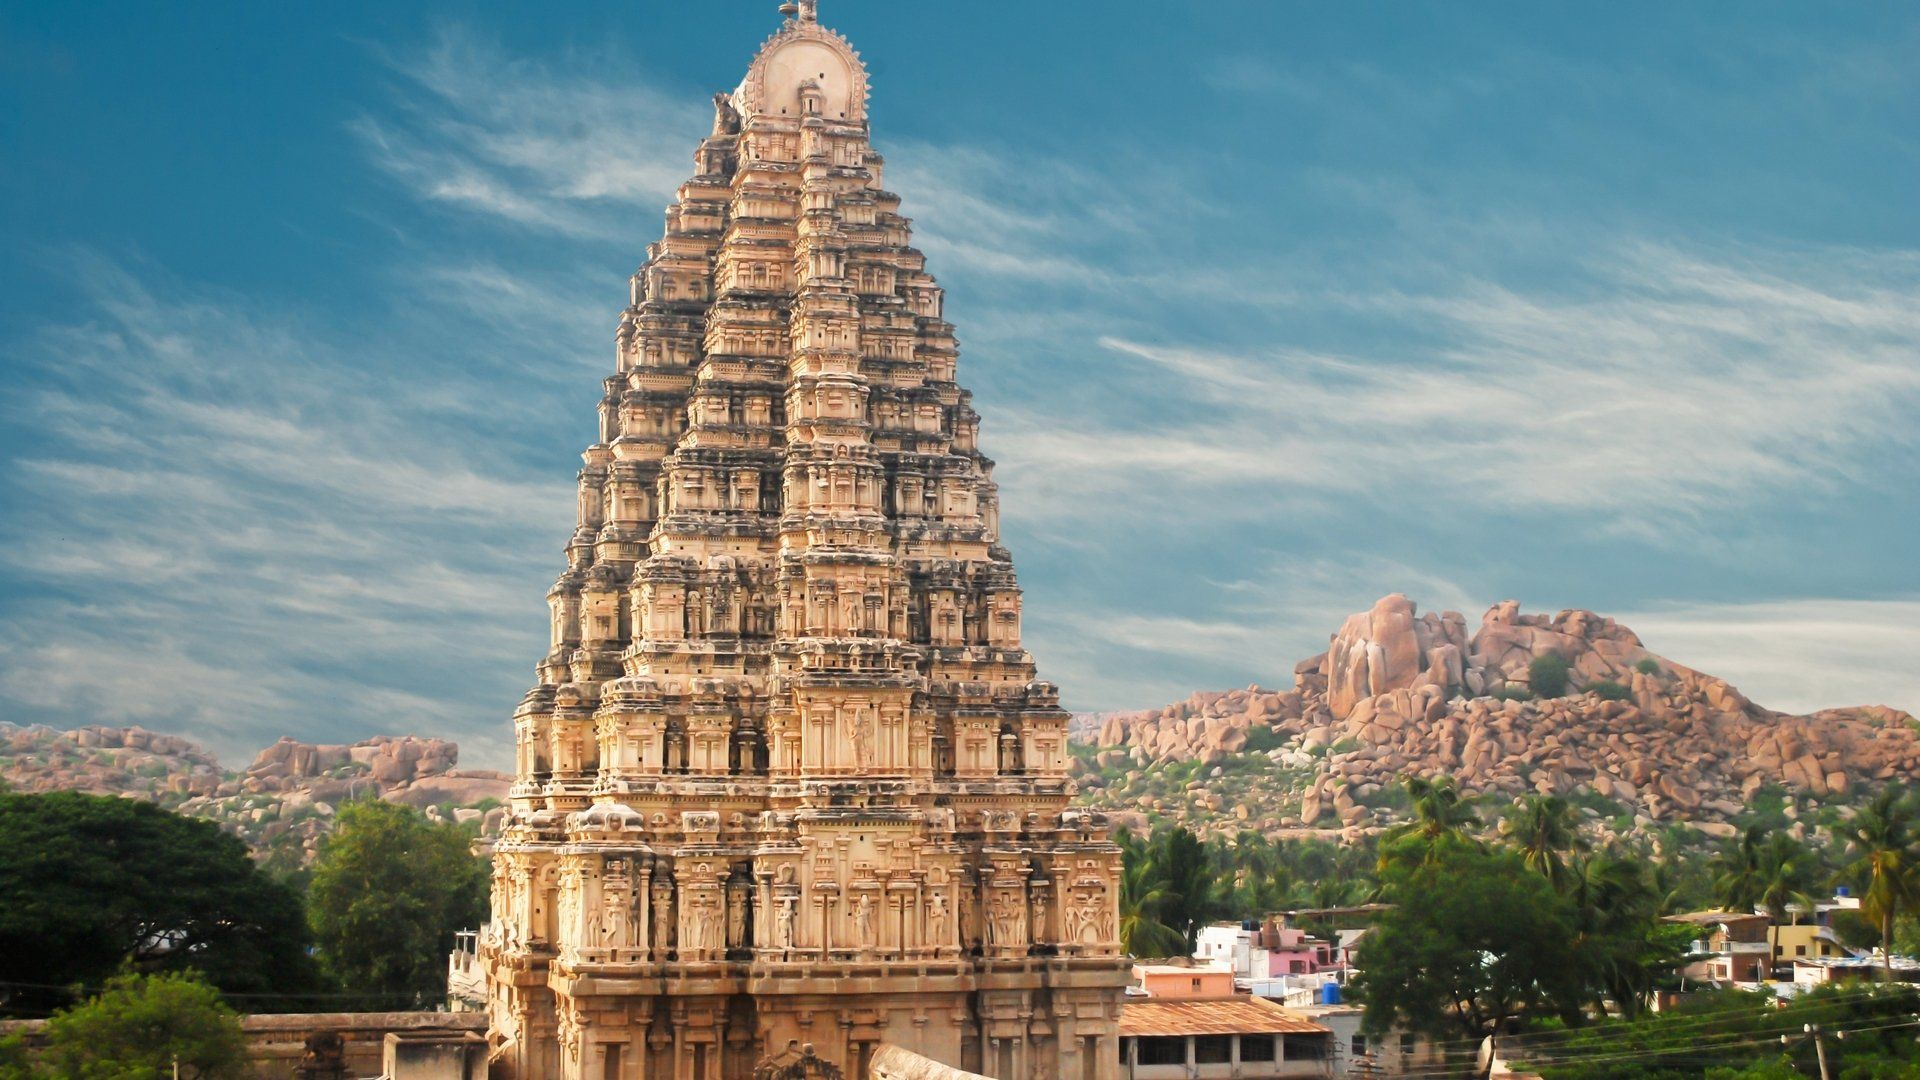 Hindu Temple Wallpapers - Top Free Hindu Temple Backgrounds